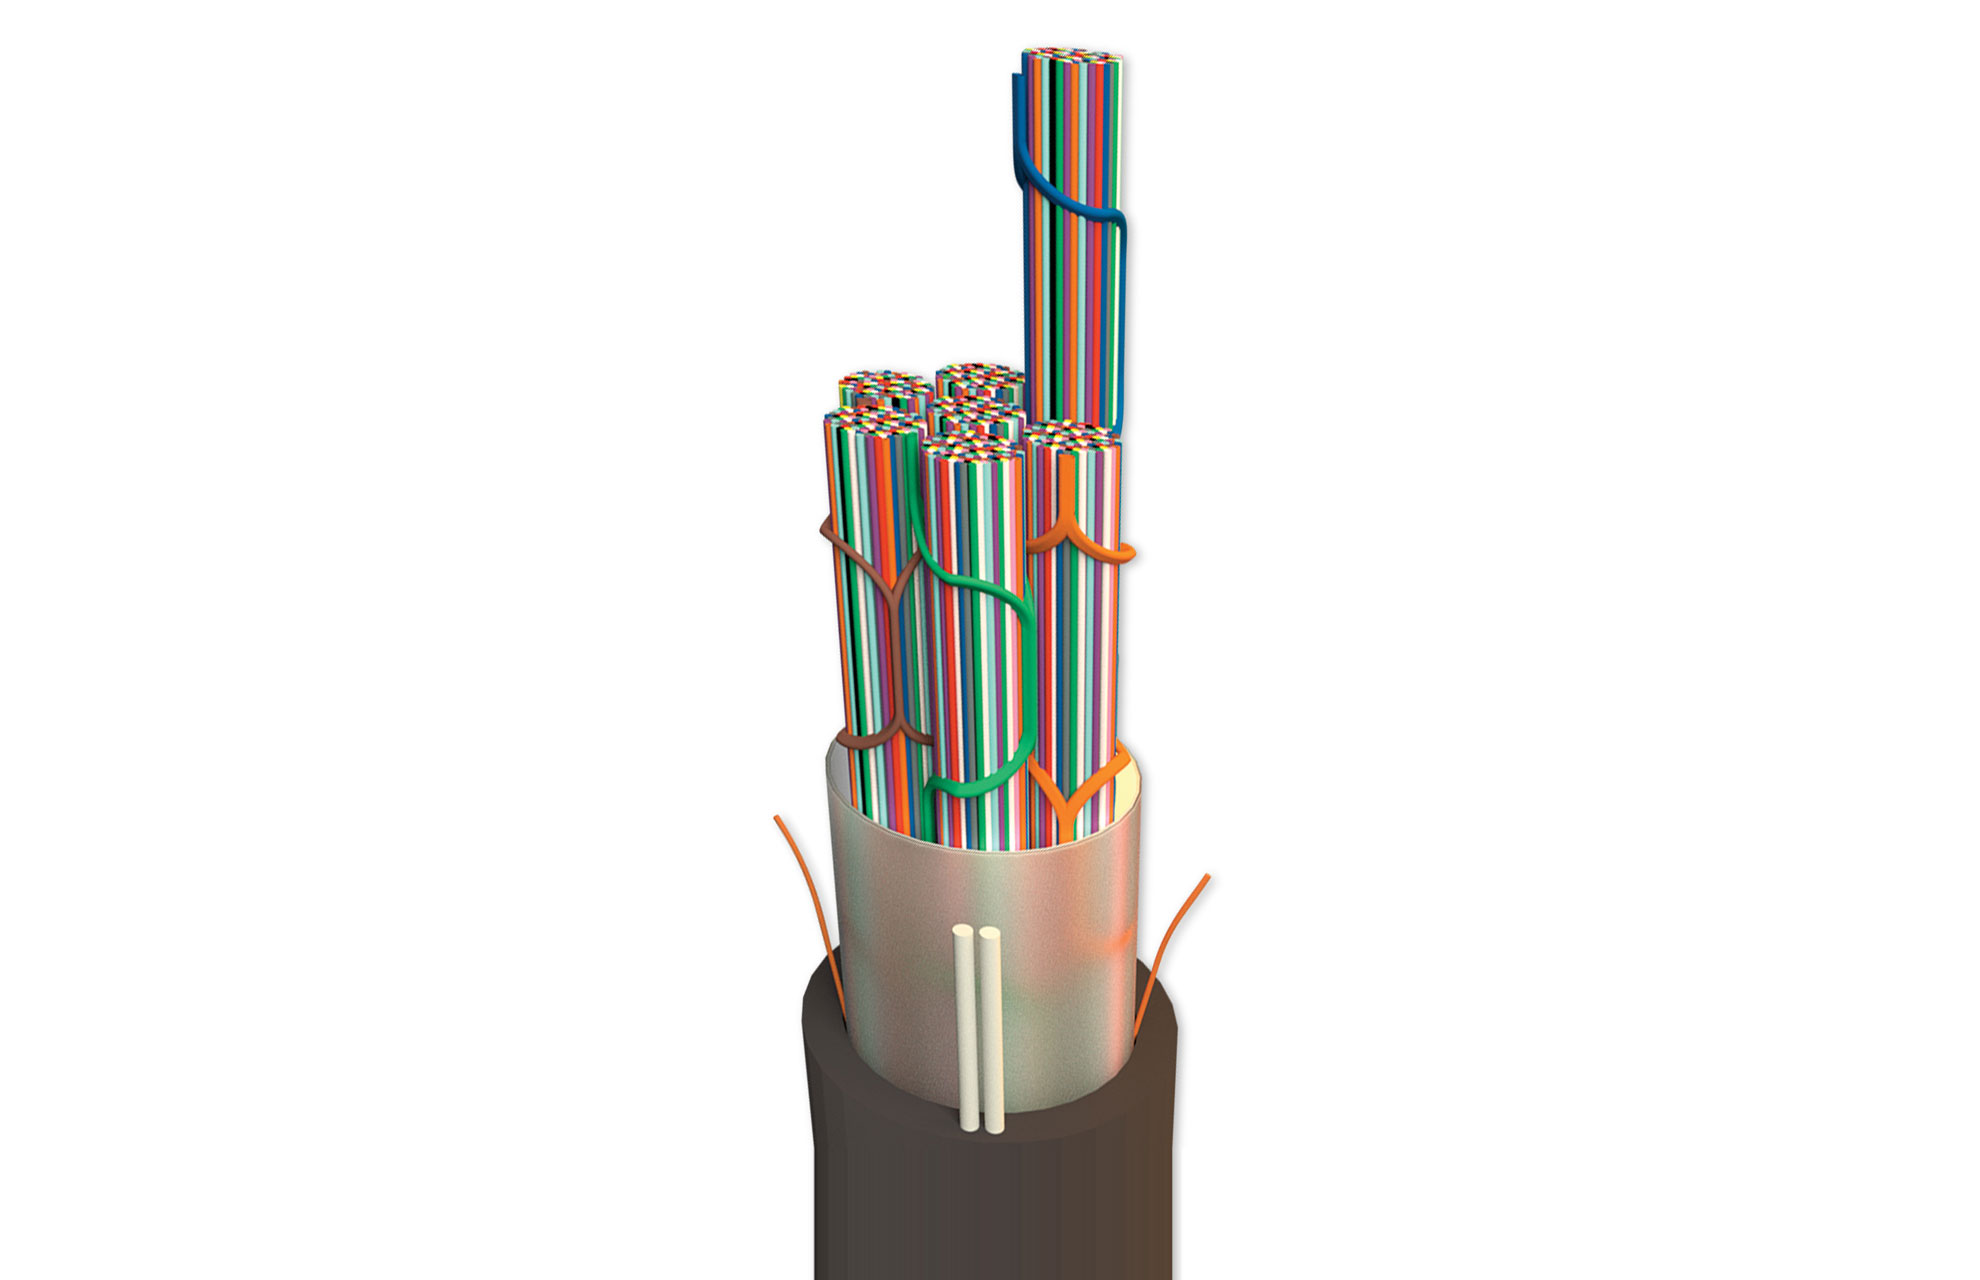 Wrapping-Tube-Cable-(WTC)-with-SpiderWeb-Ribbon-(SWR)